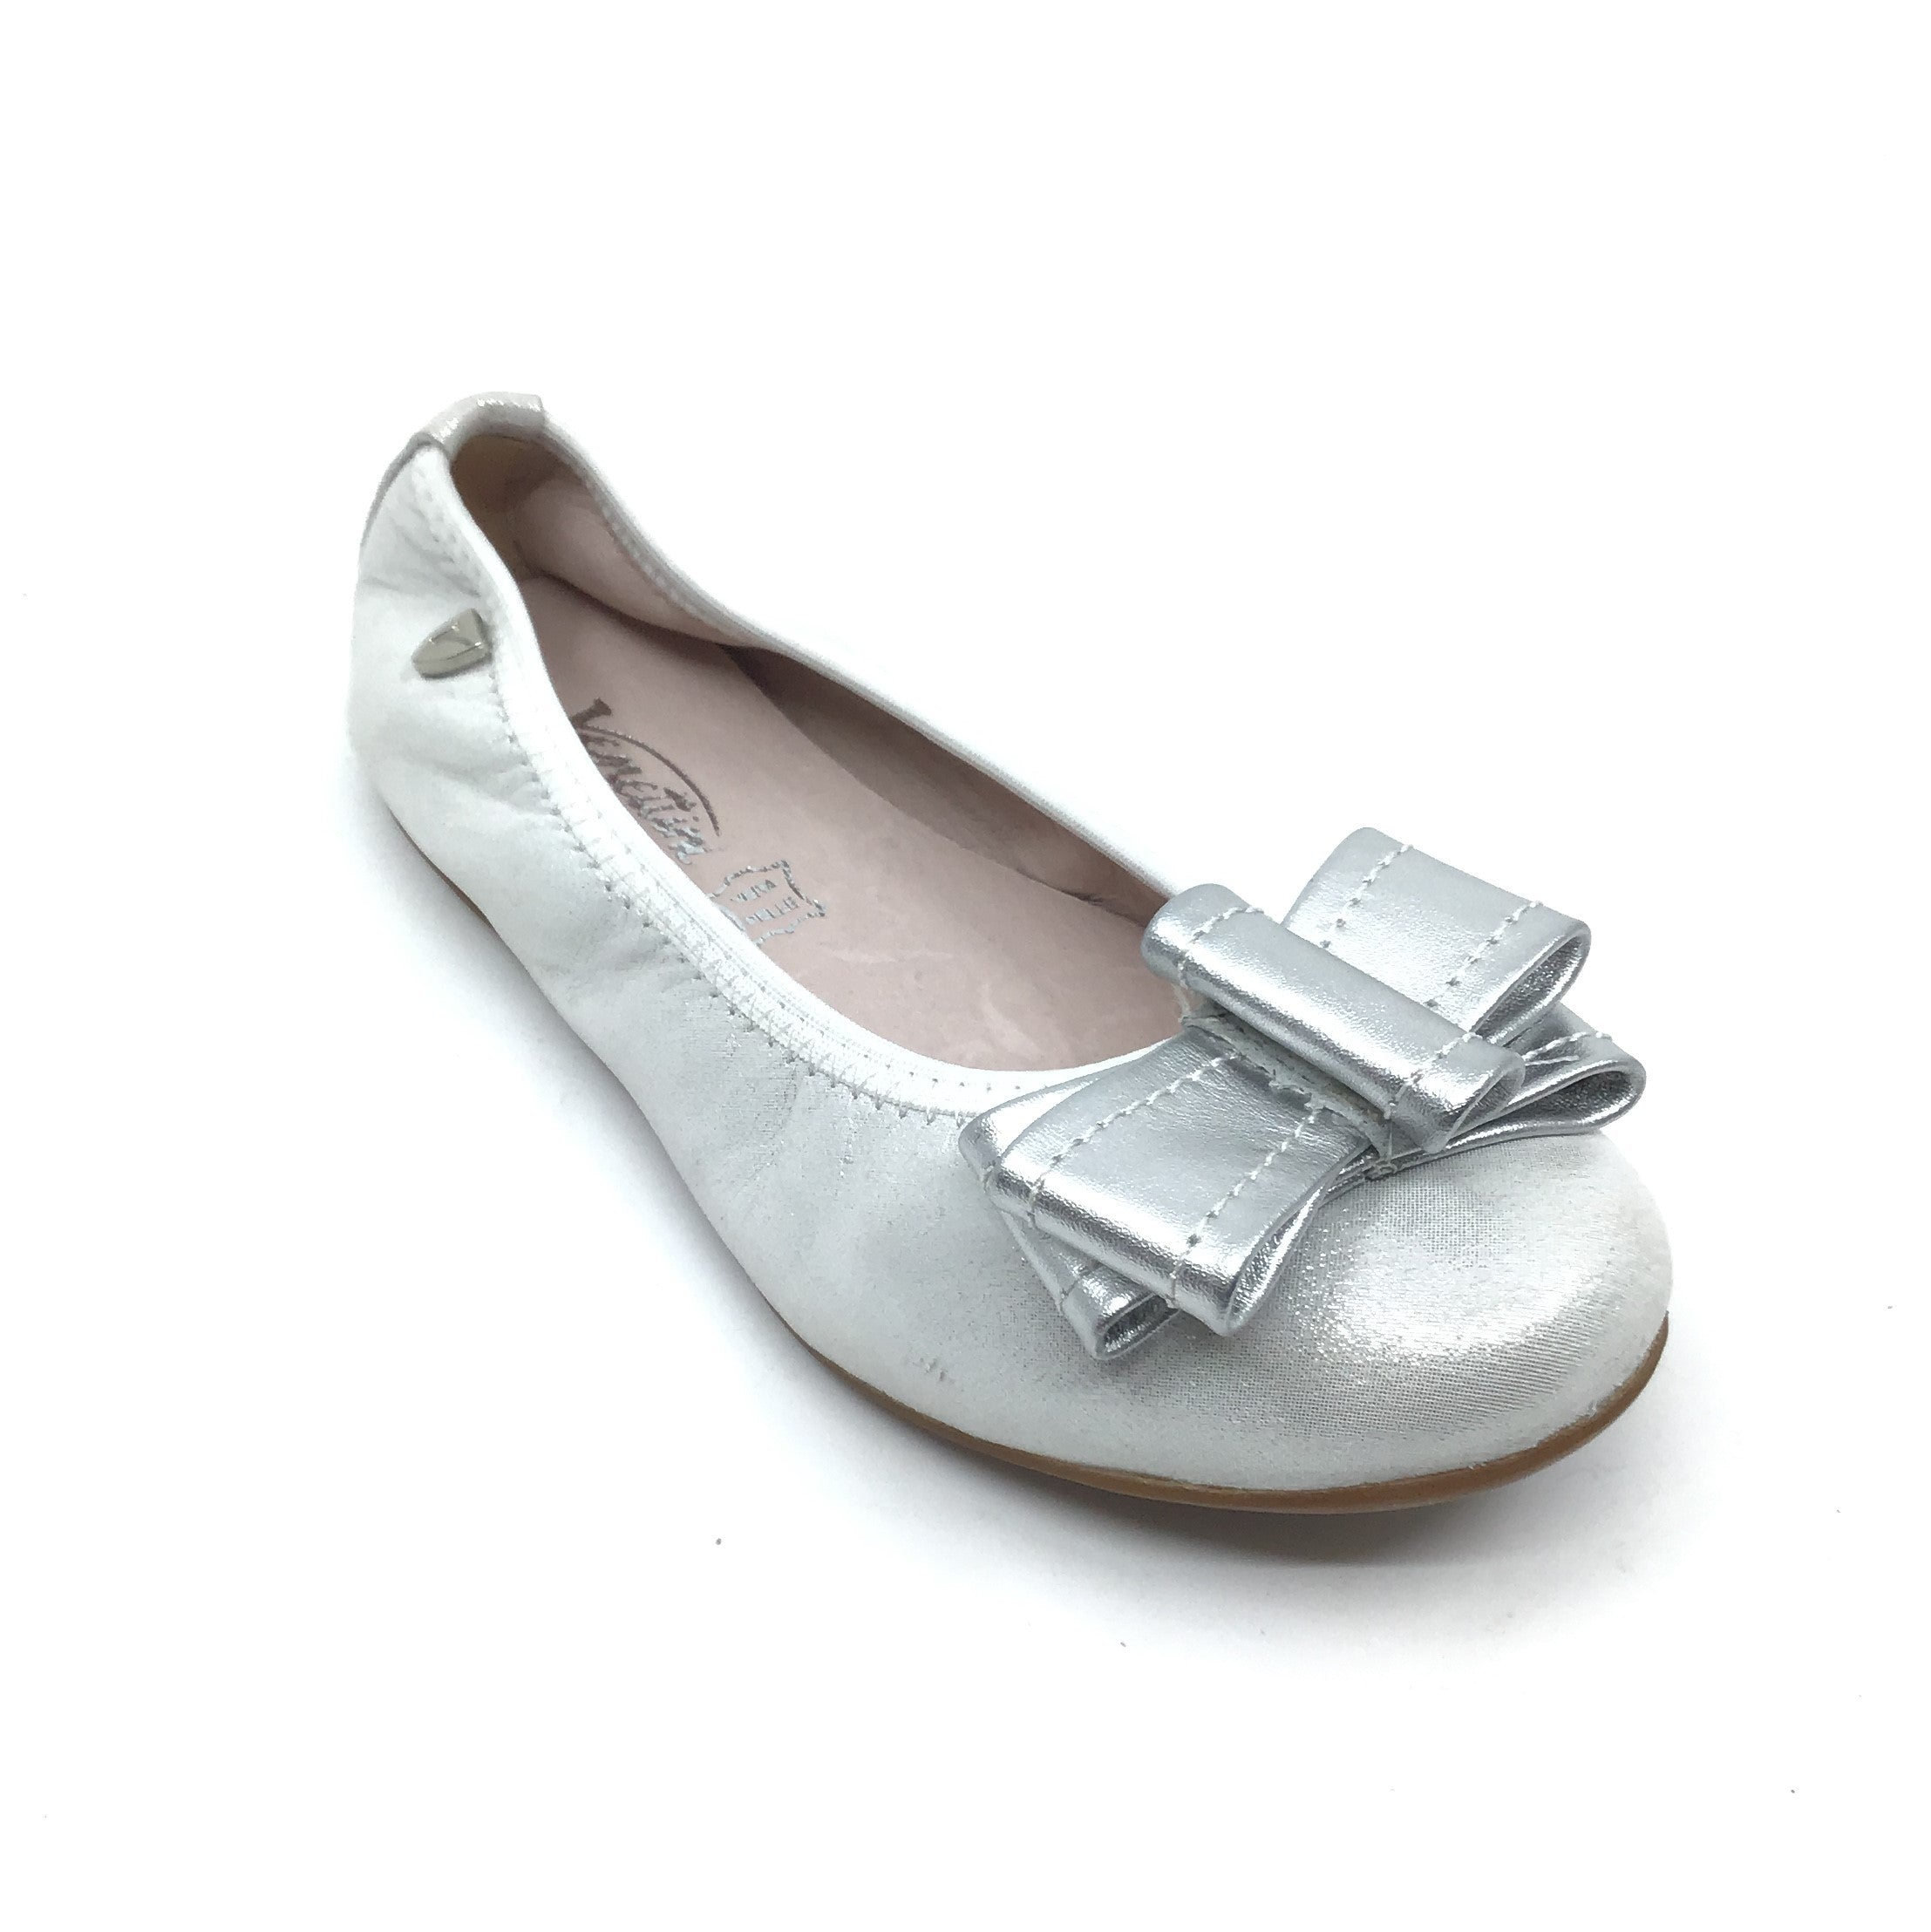 Venettini Silver Ballet Shoe with Bow